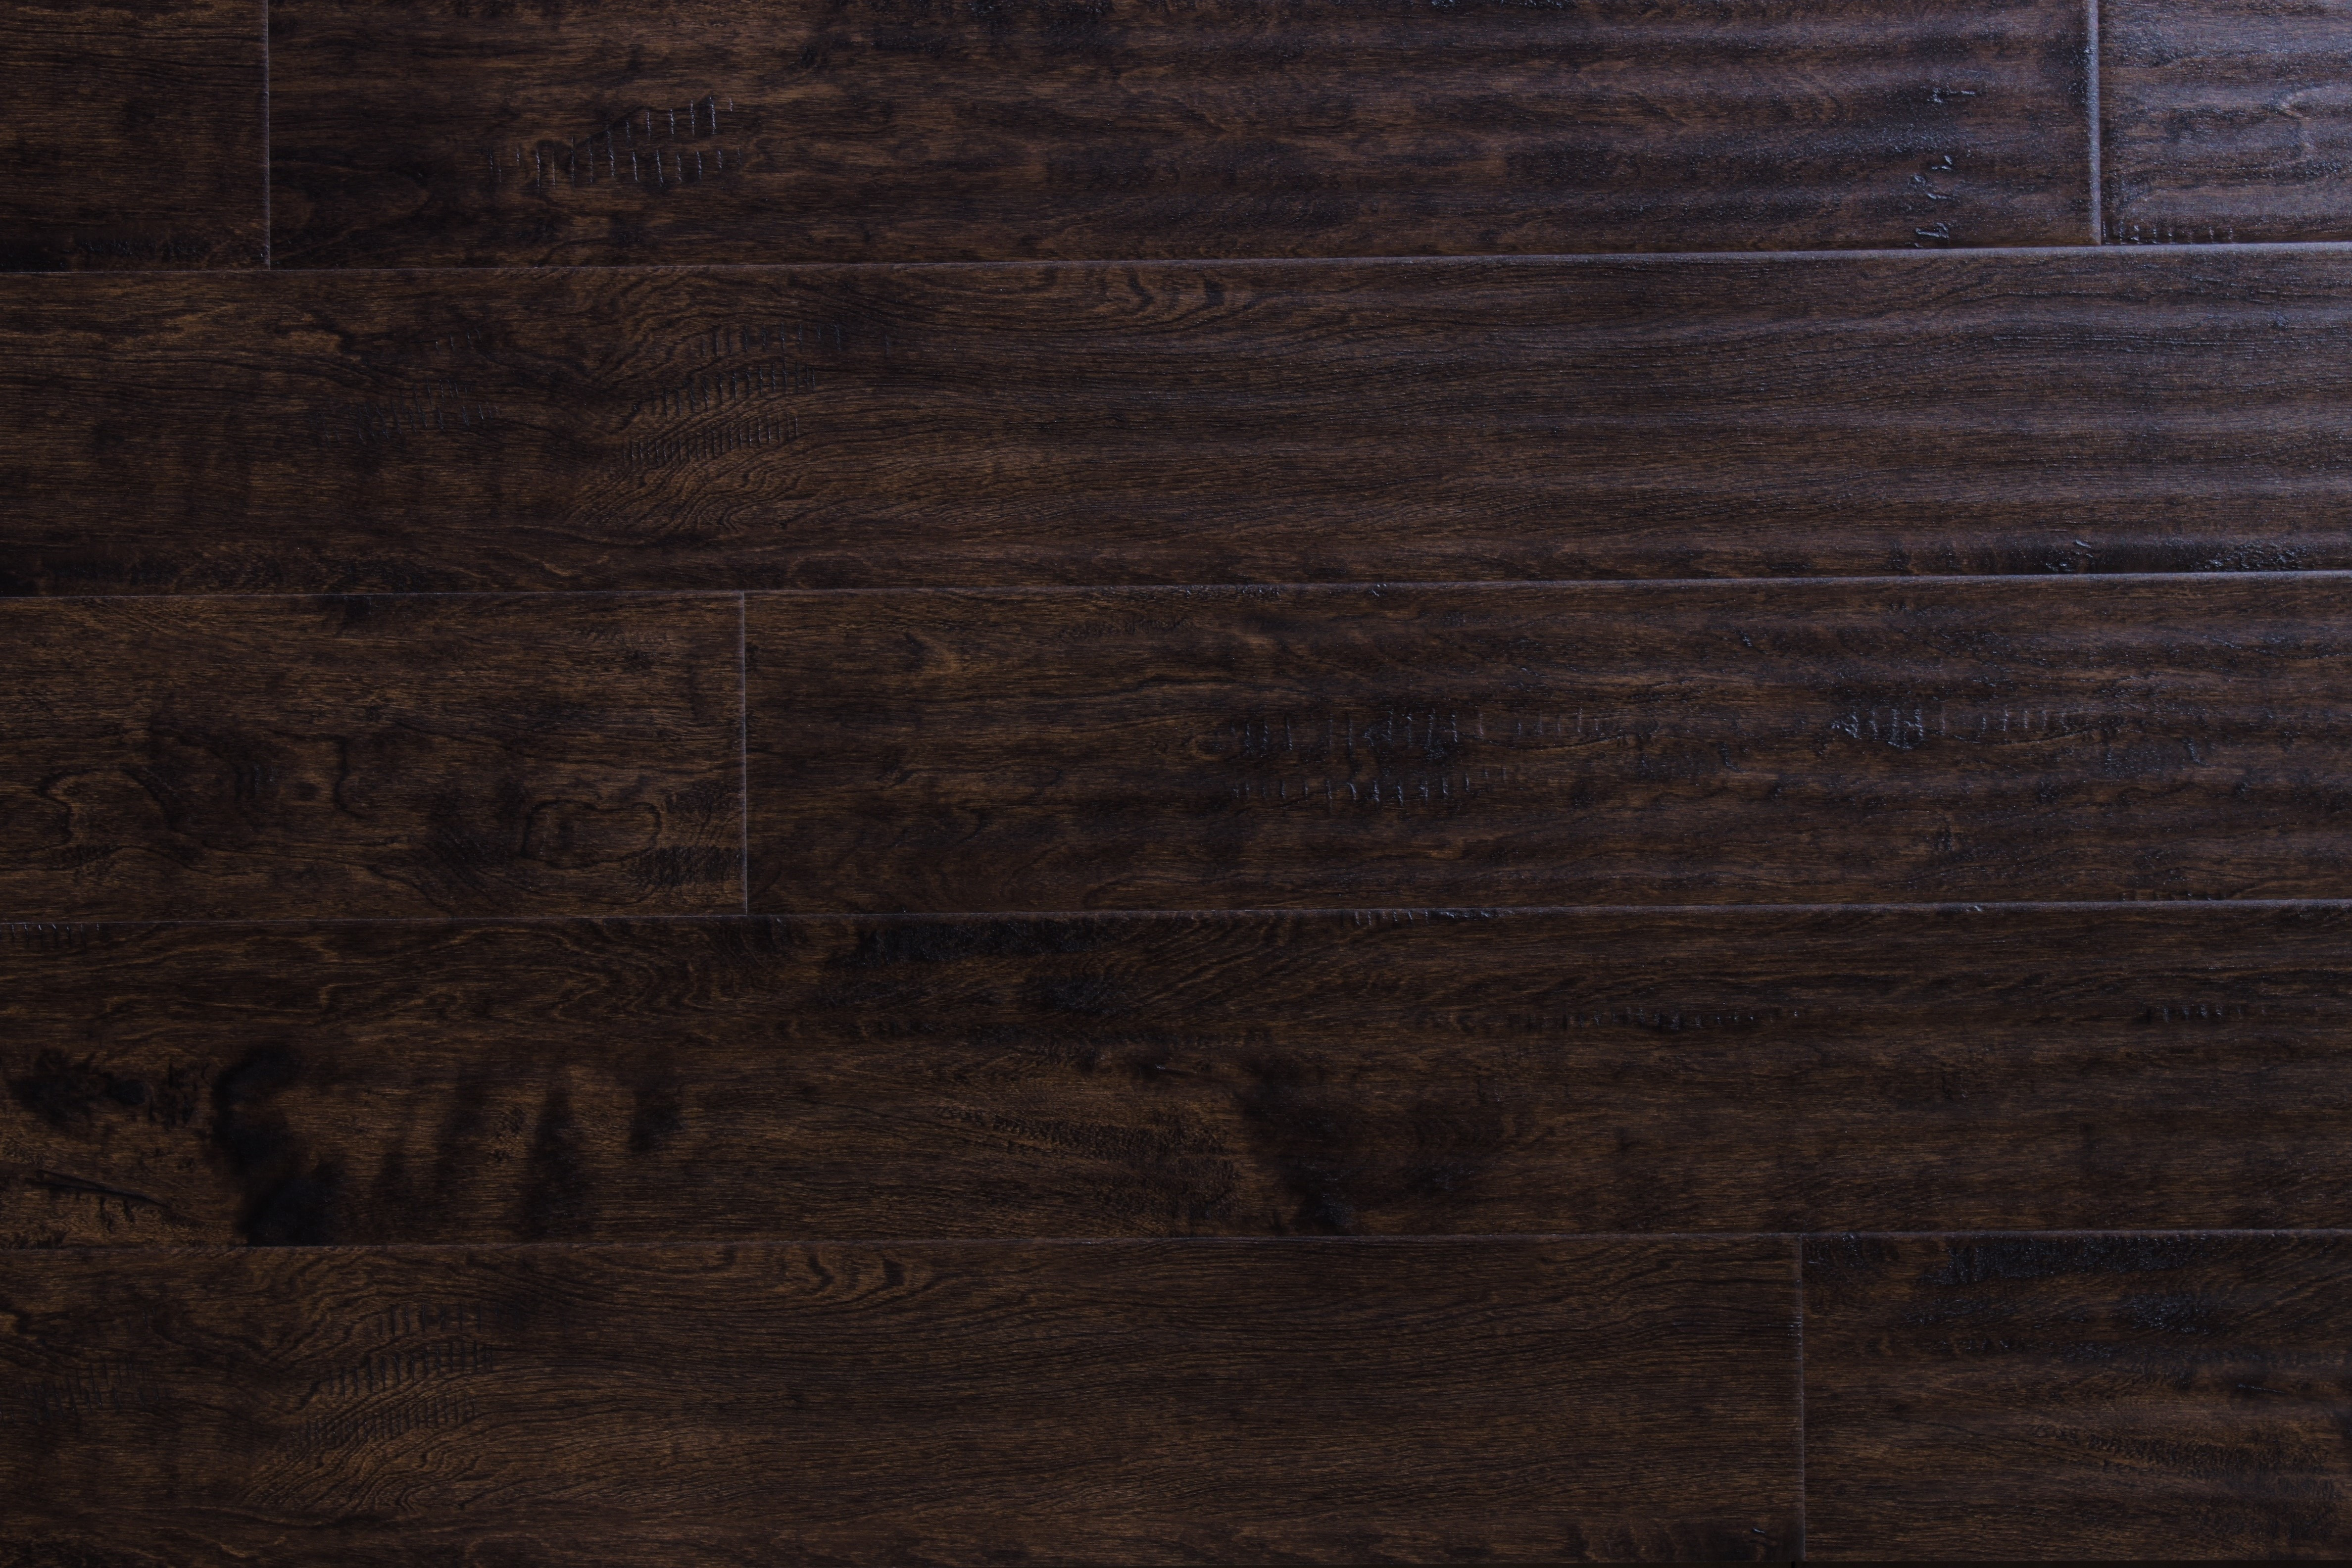 hardwood flooring duluth mn of wood flooring free samples available at builddirecta for tailor multi gb 5874277bb8d3c